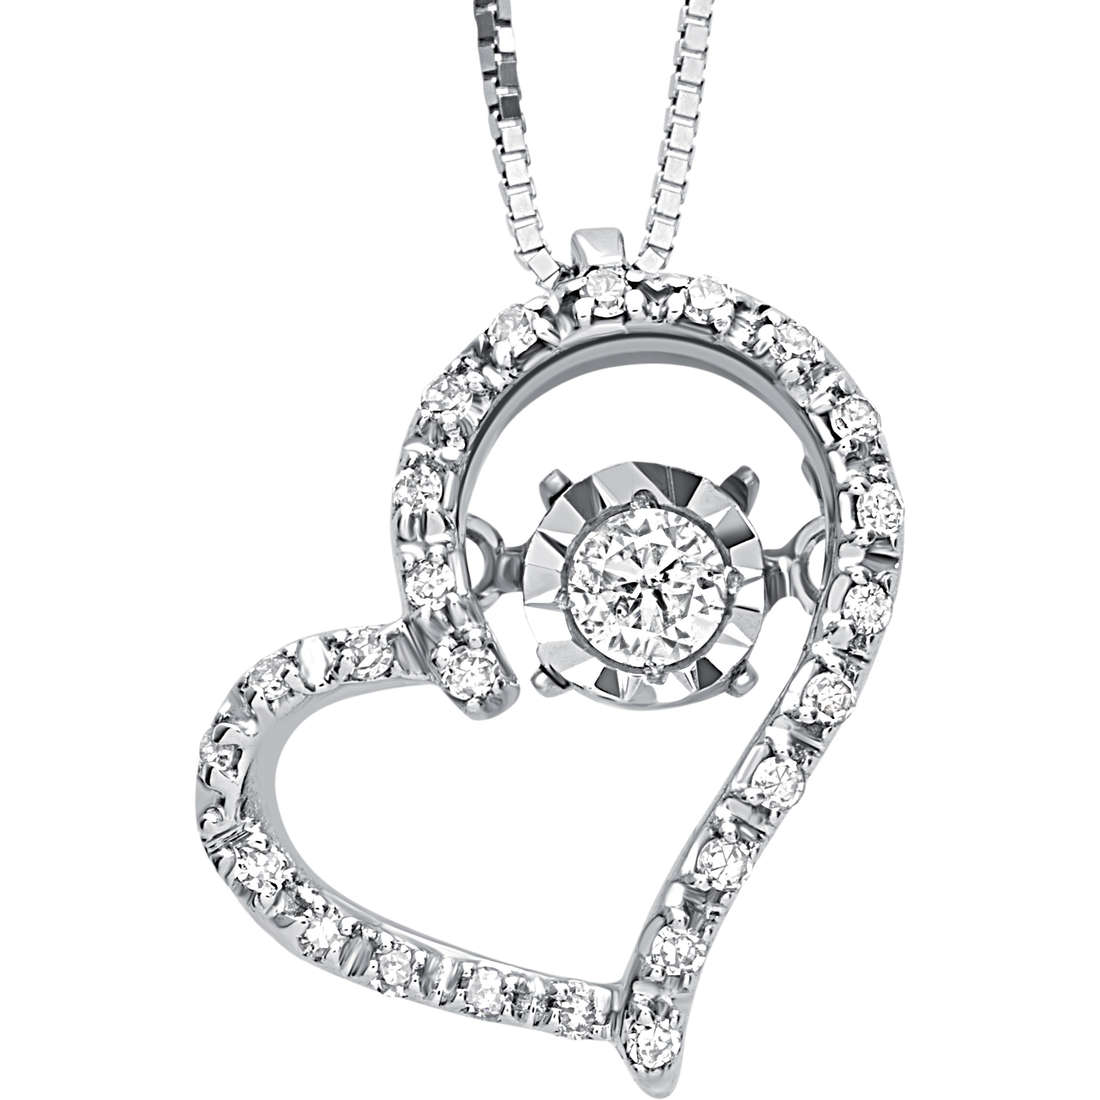 Bliss necklace white gold and diamonds heart symbol 20069845